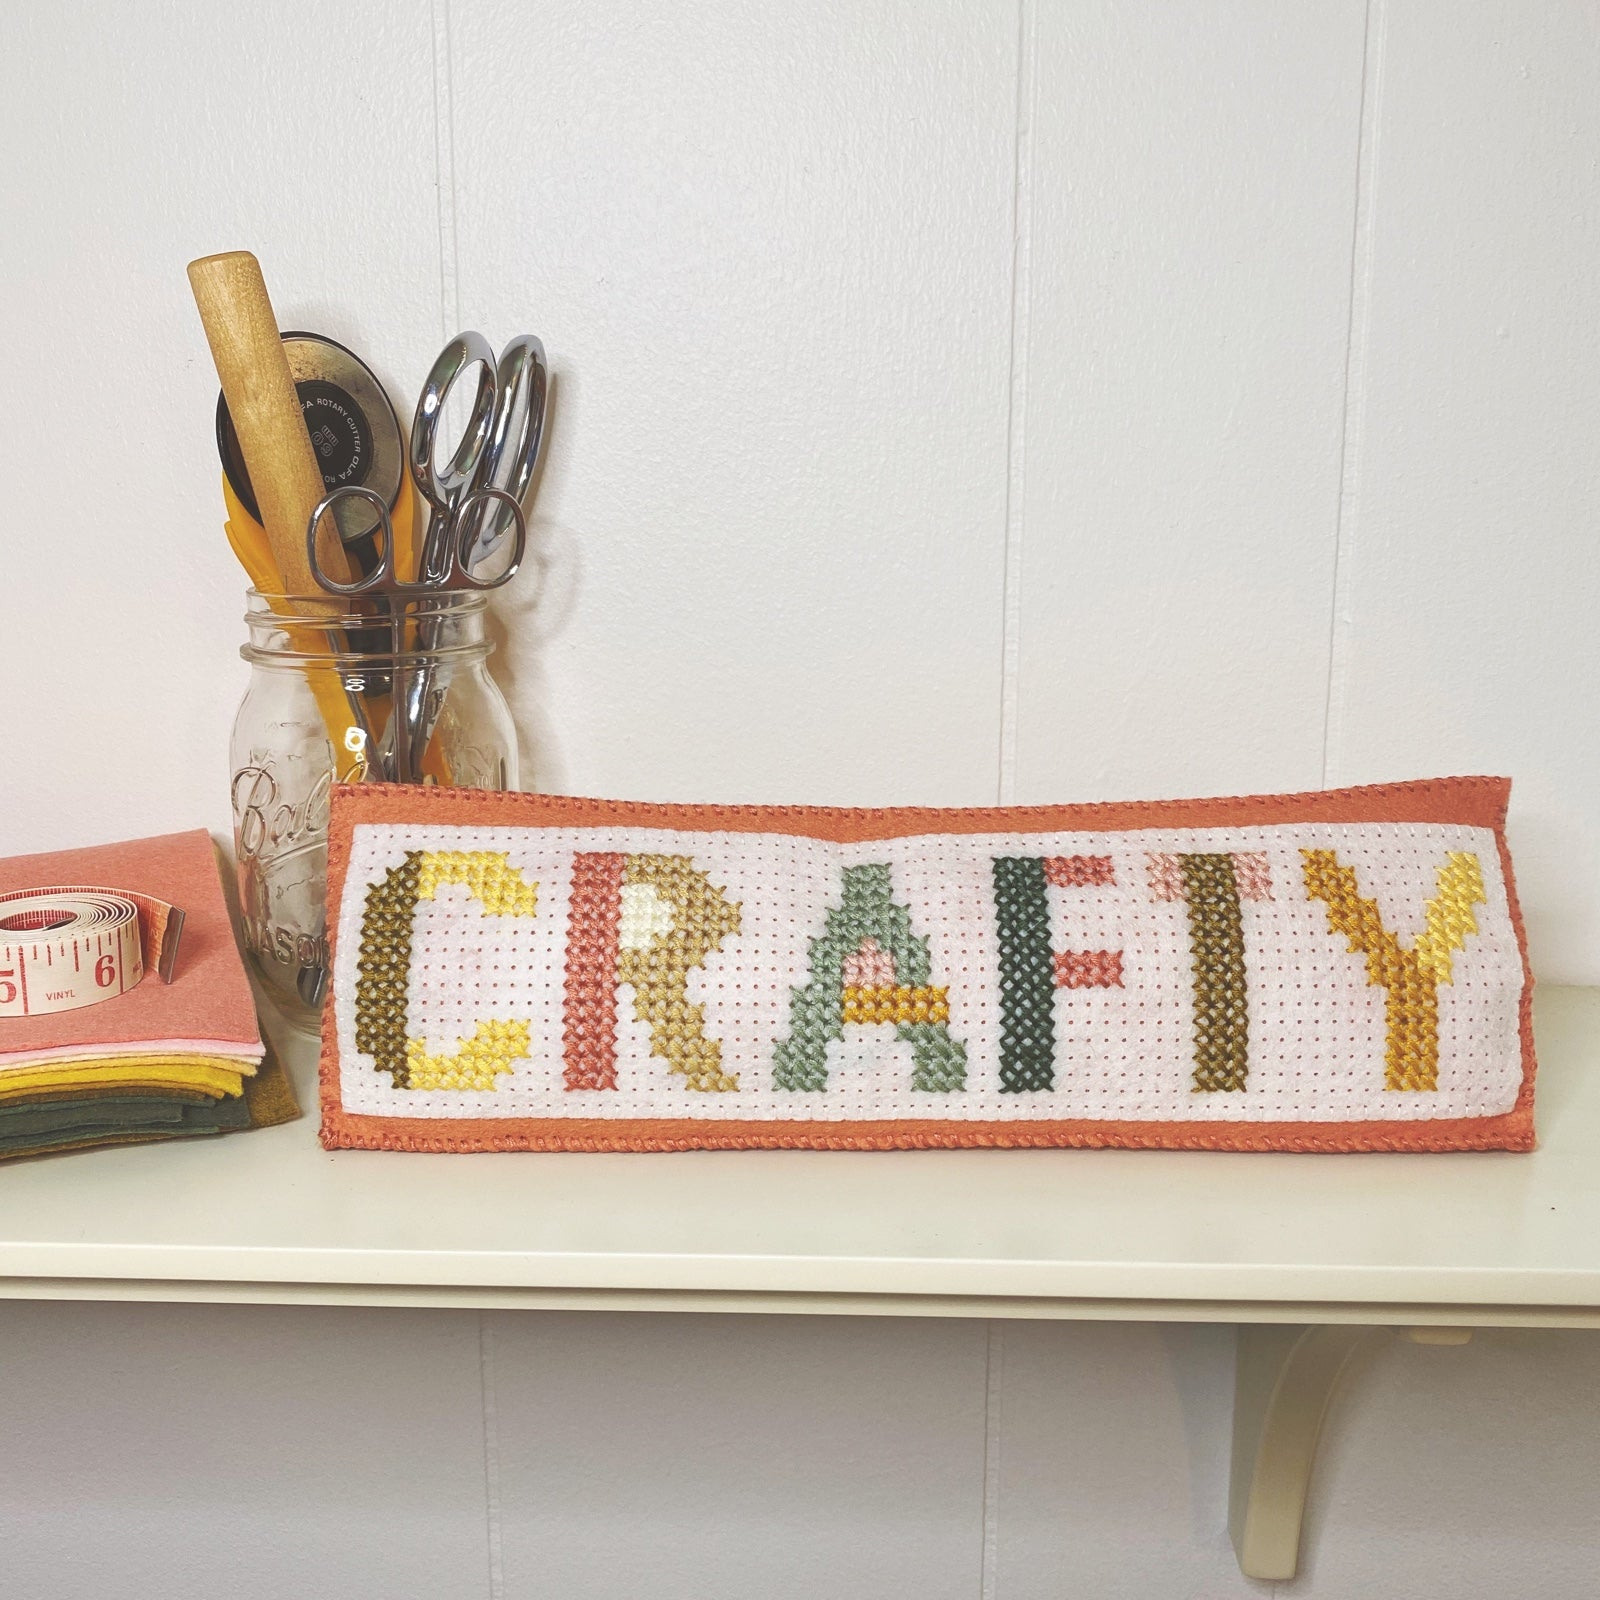 crafty name plate